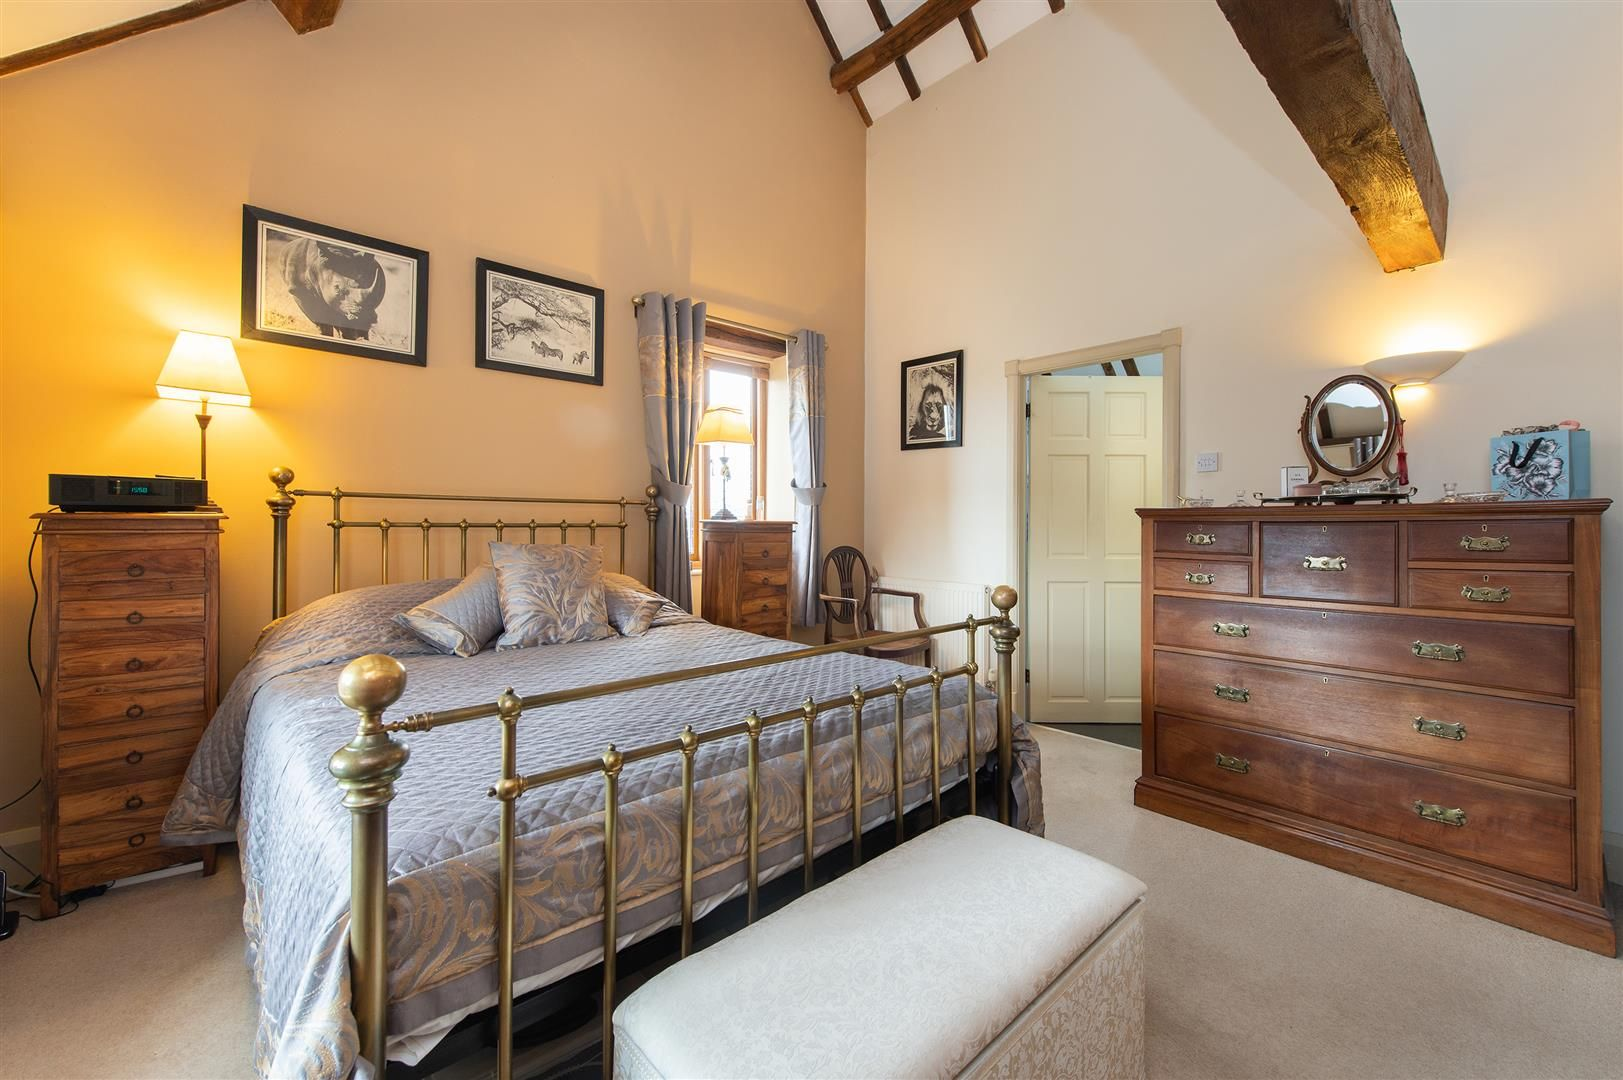 4 bed barn-conversion for sale in Wolverley  - Property Image 17